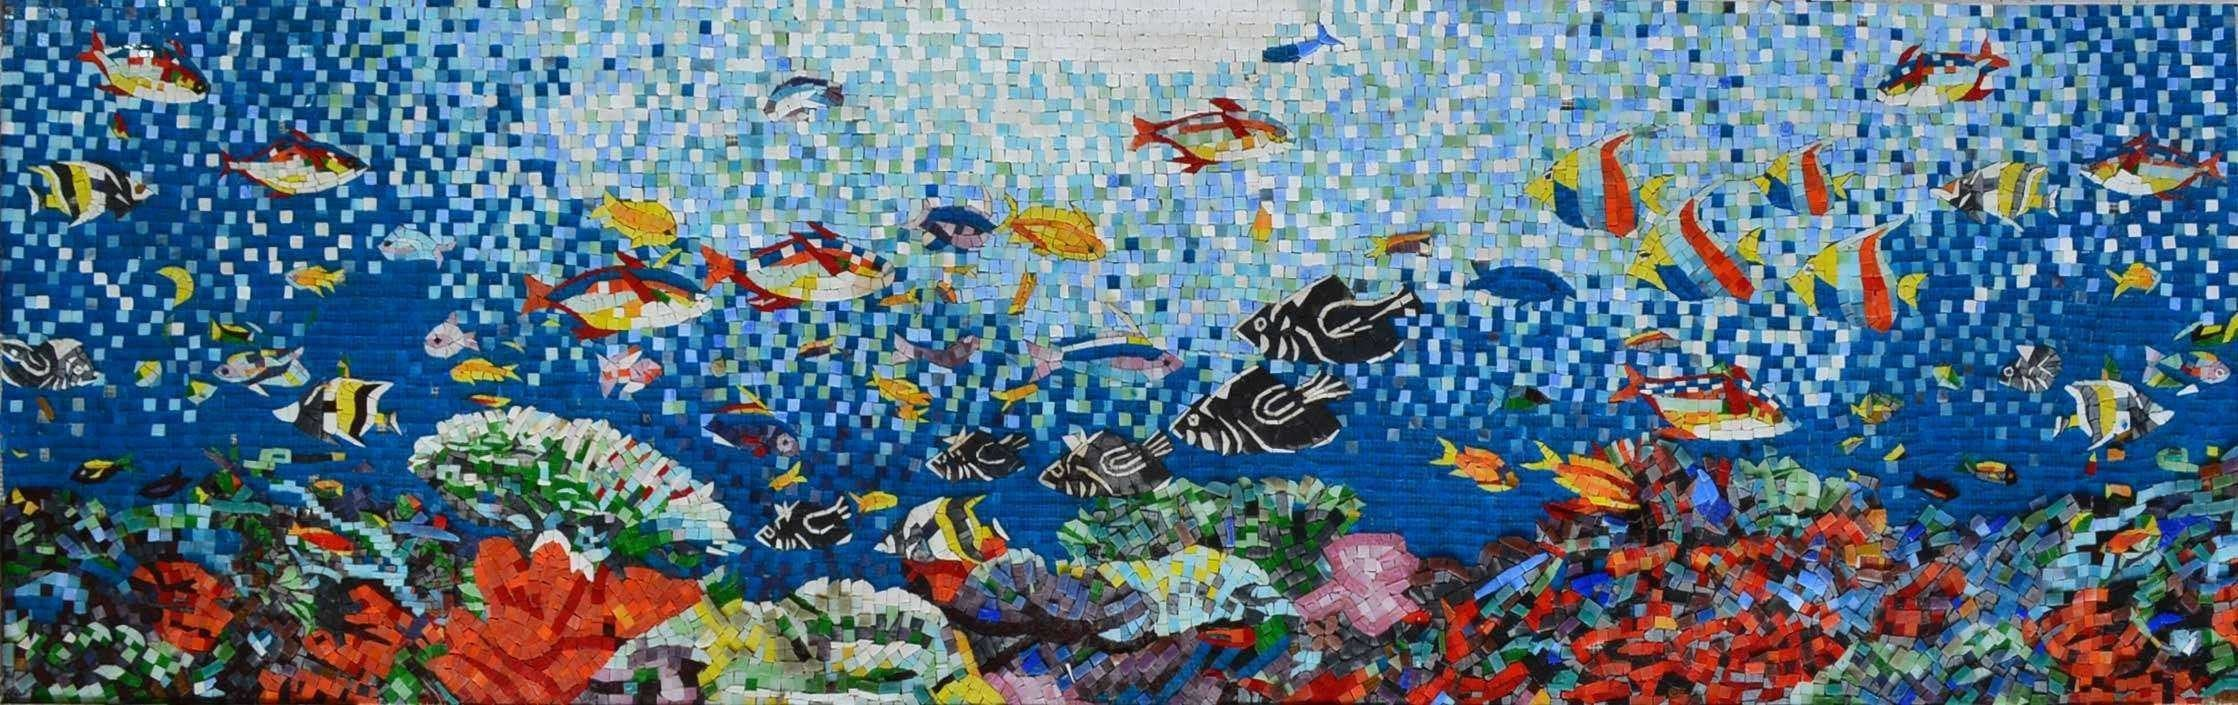 Aquatic Sea Creatues Scene Glass Mosaic Pic